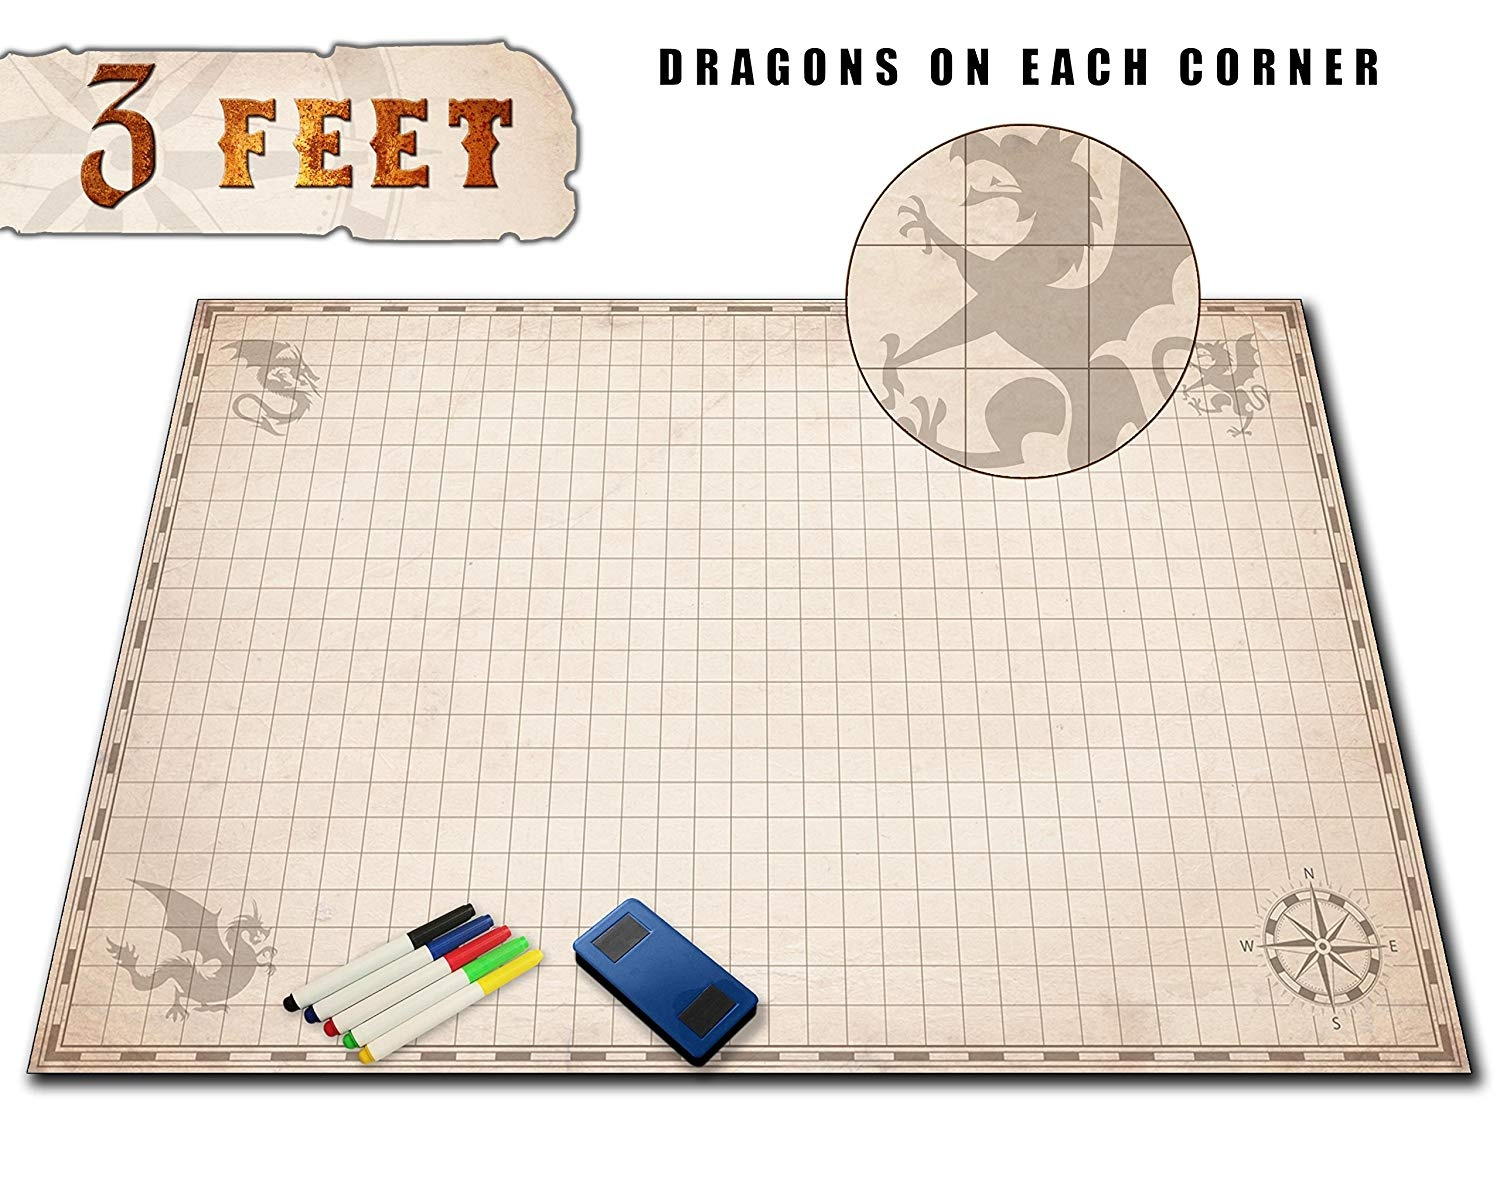 Jumbo DND Role Play Game Mat - 90cm X 60cm - Battle Grid RPG Dungeons  Dragons Style Tiles - Reusable Dry Erase Gaming Map - Miniature Figure and